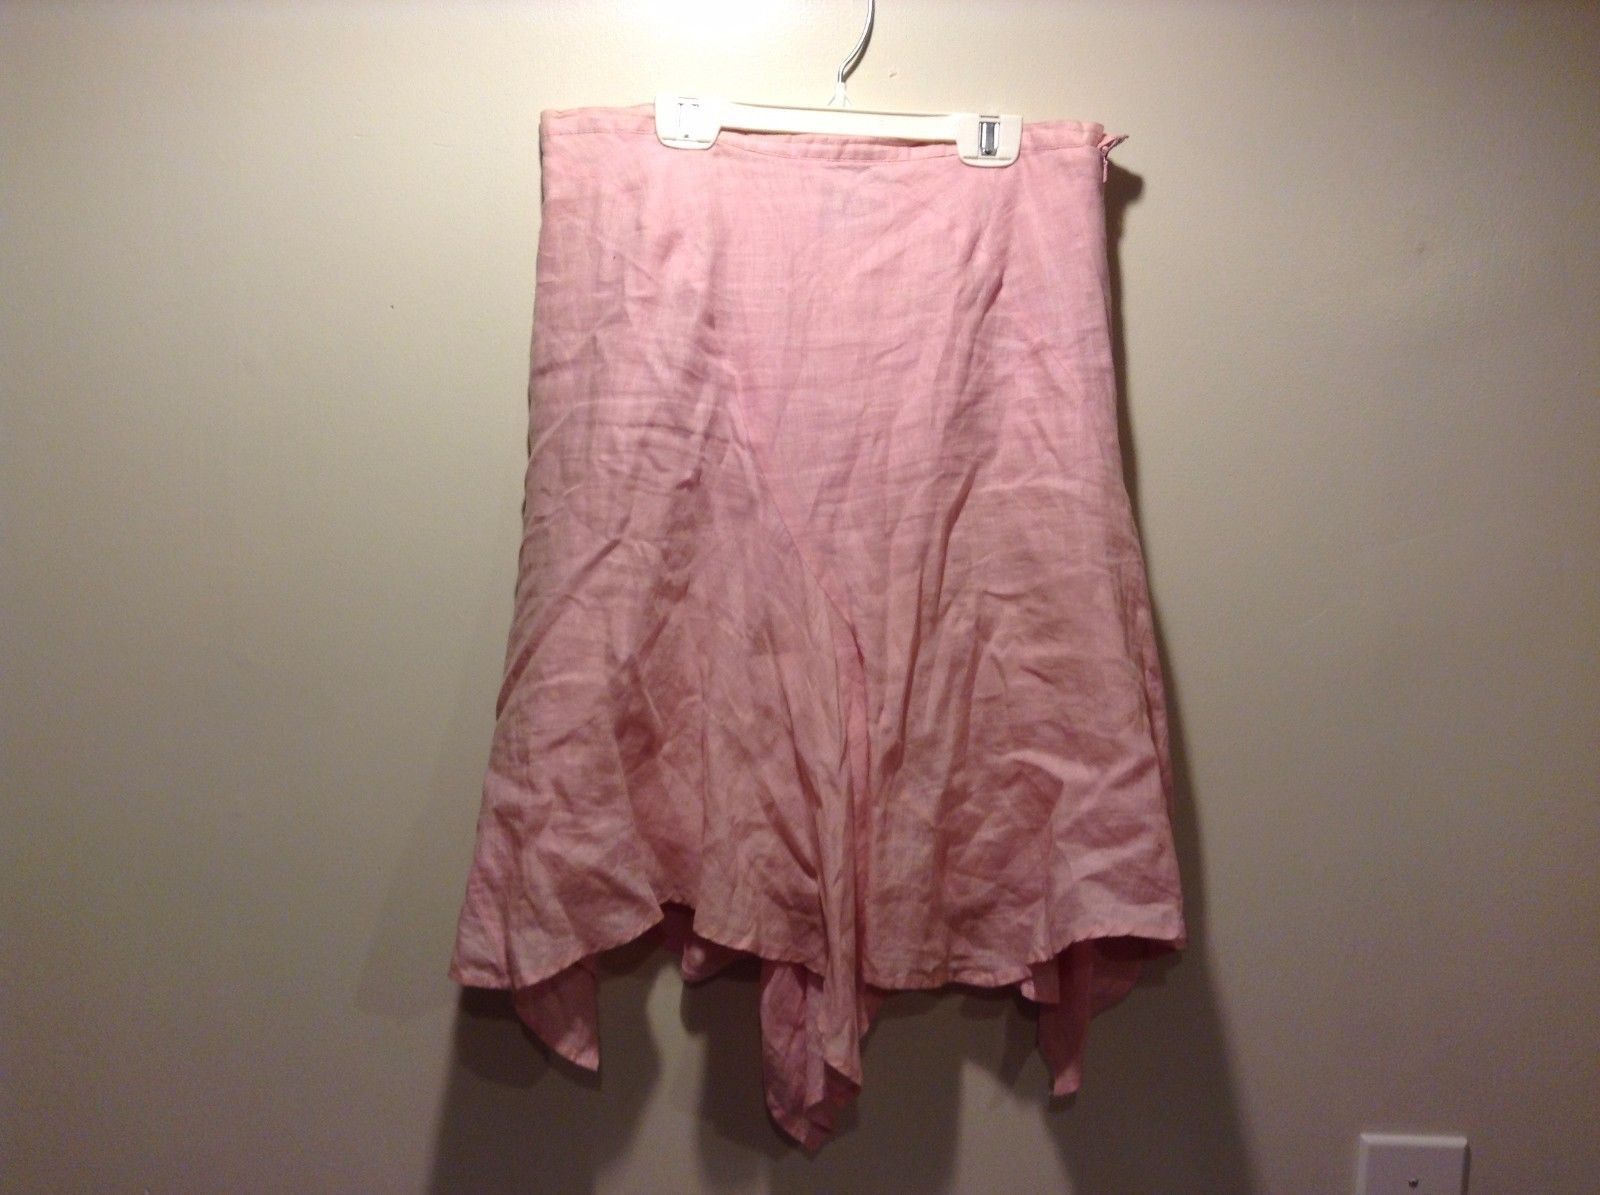 Women's Used Condition Lily Stanhope Size 8 Light Pink Ruffled Skirt Linen